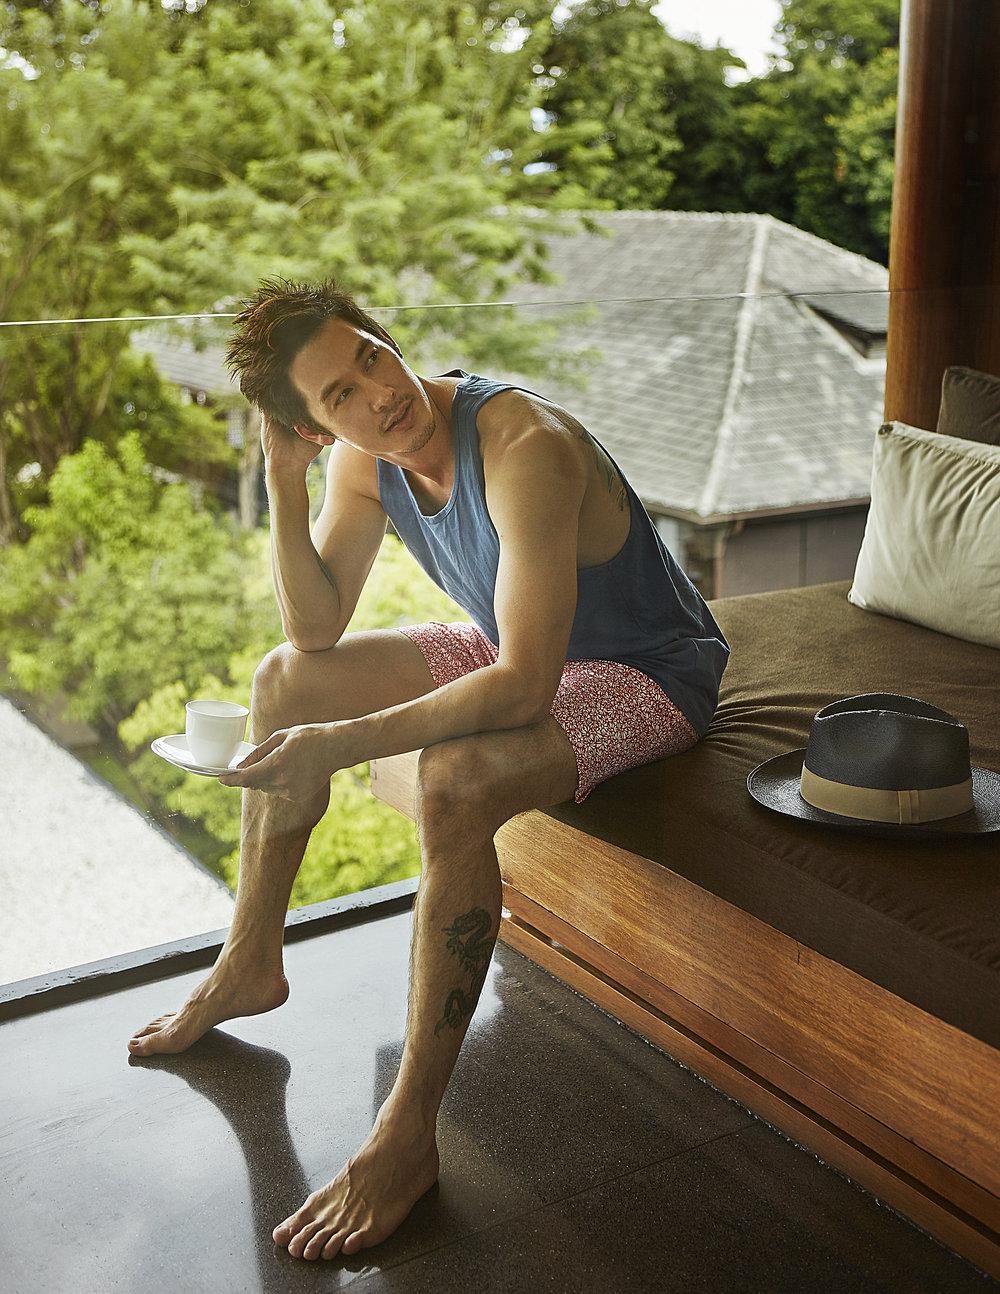 shorts : Hackett London